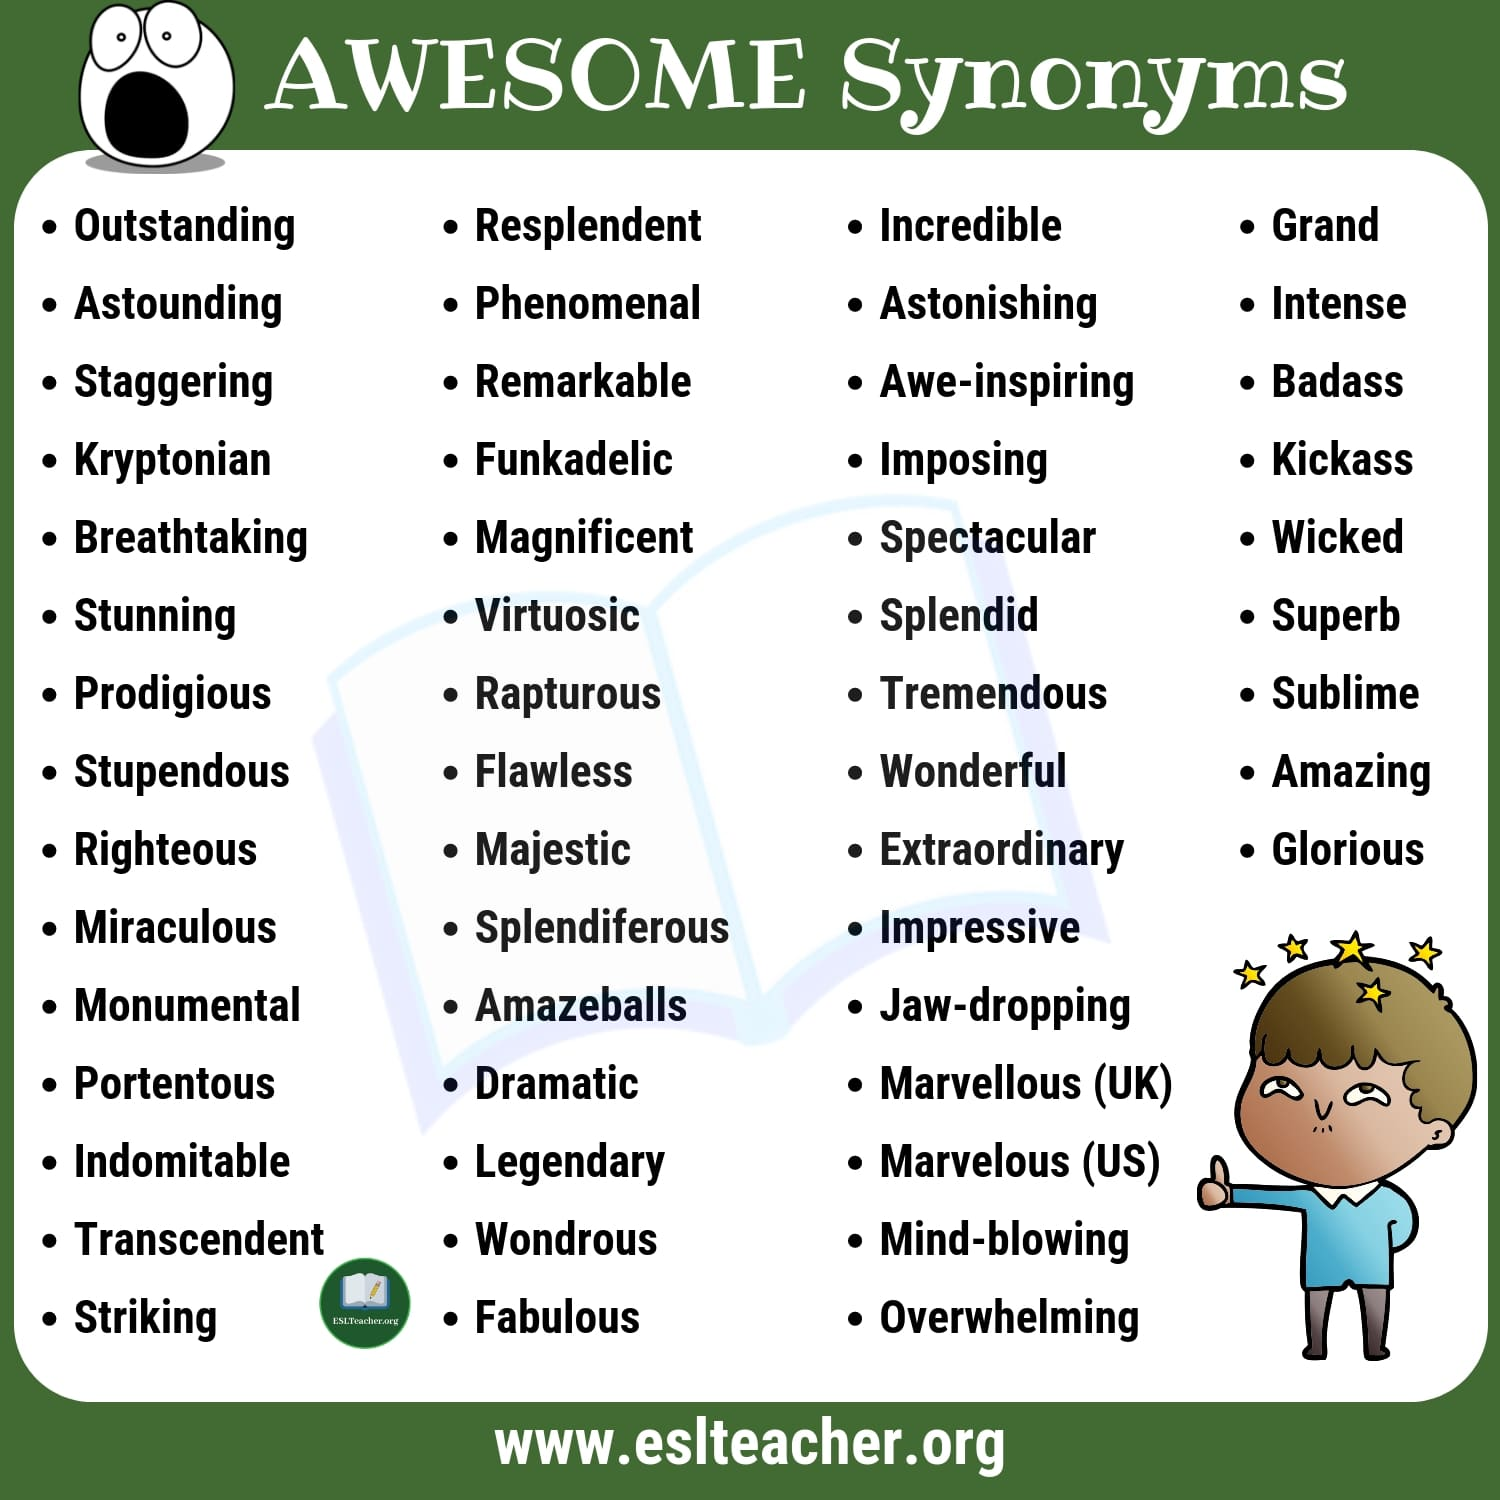 AWESOME Synonyms